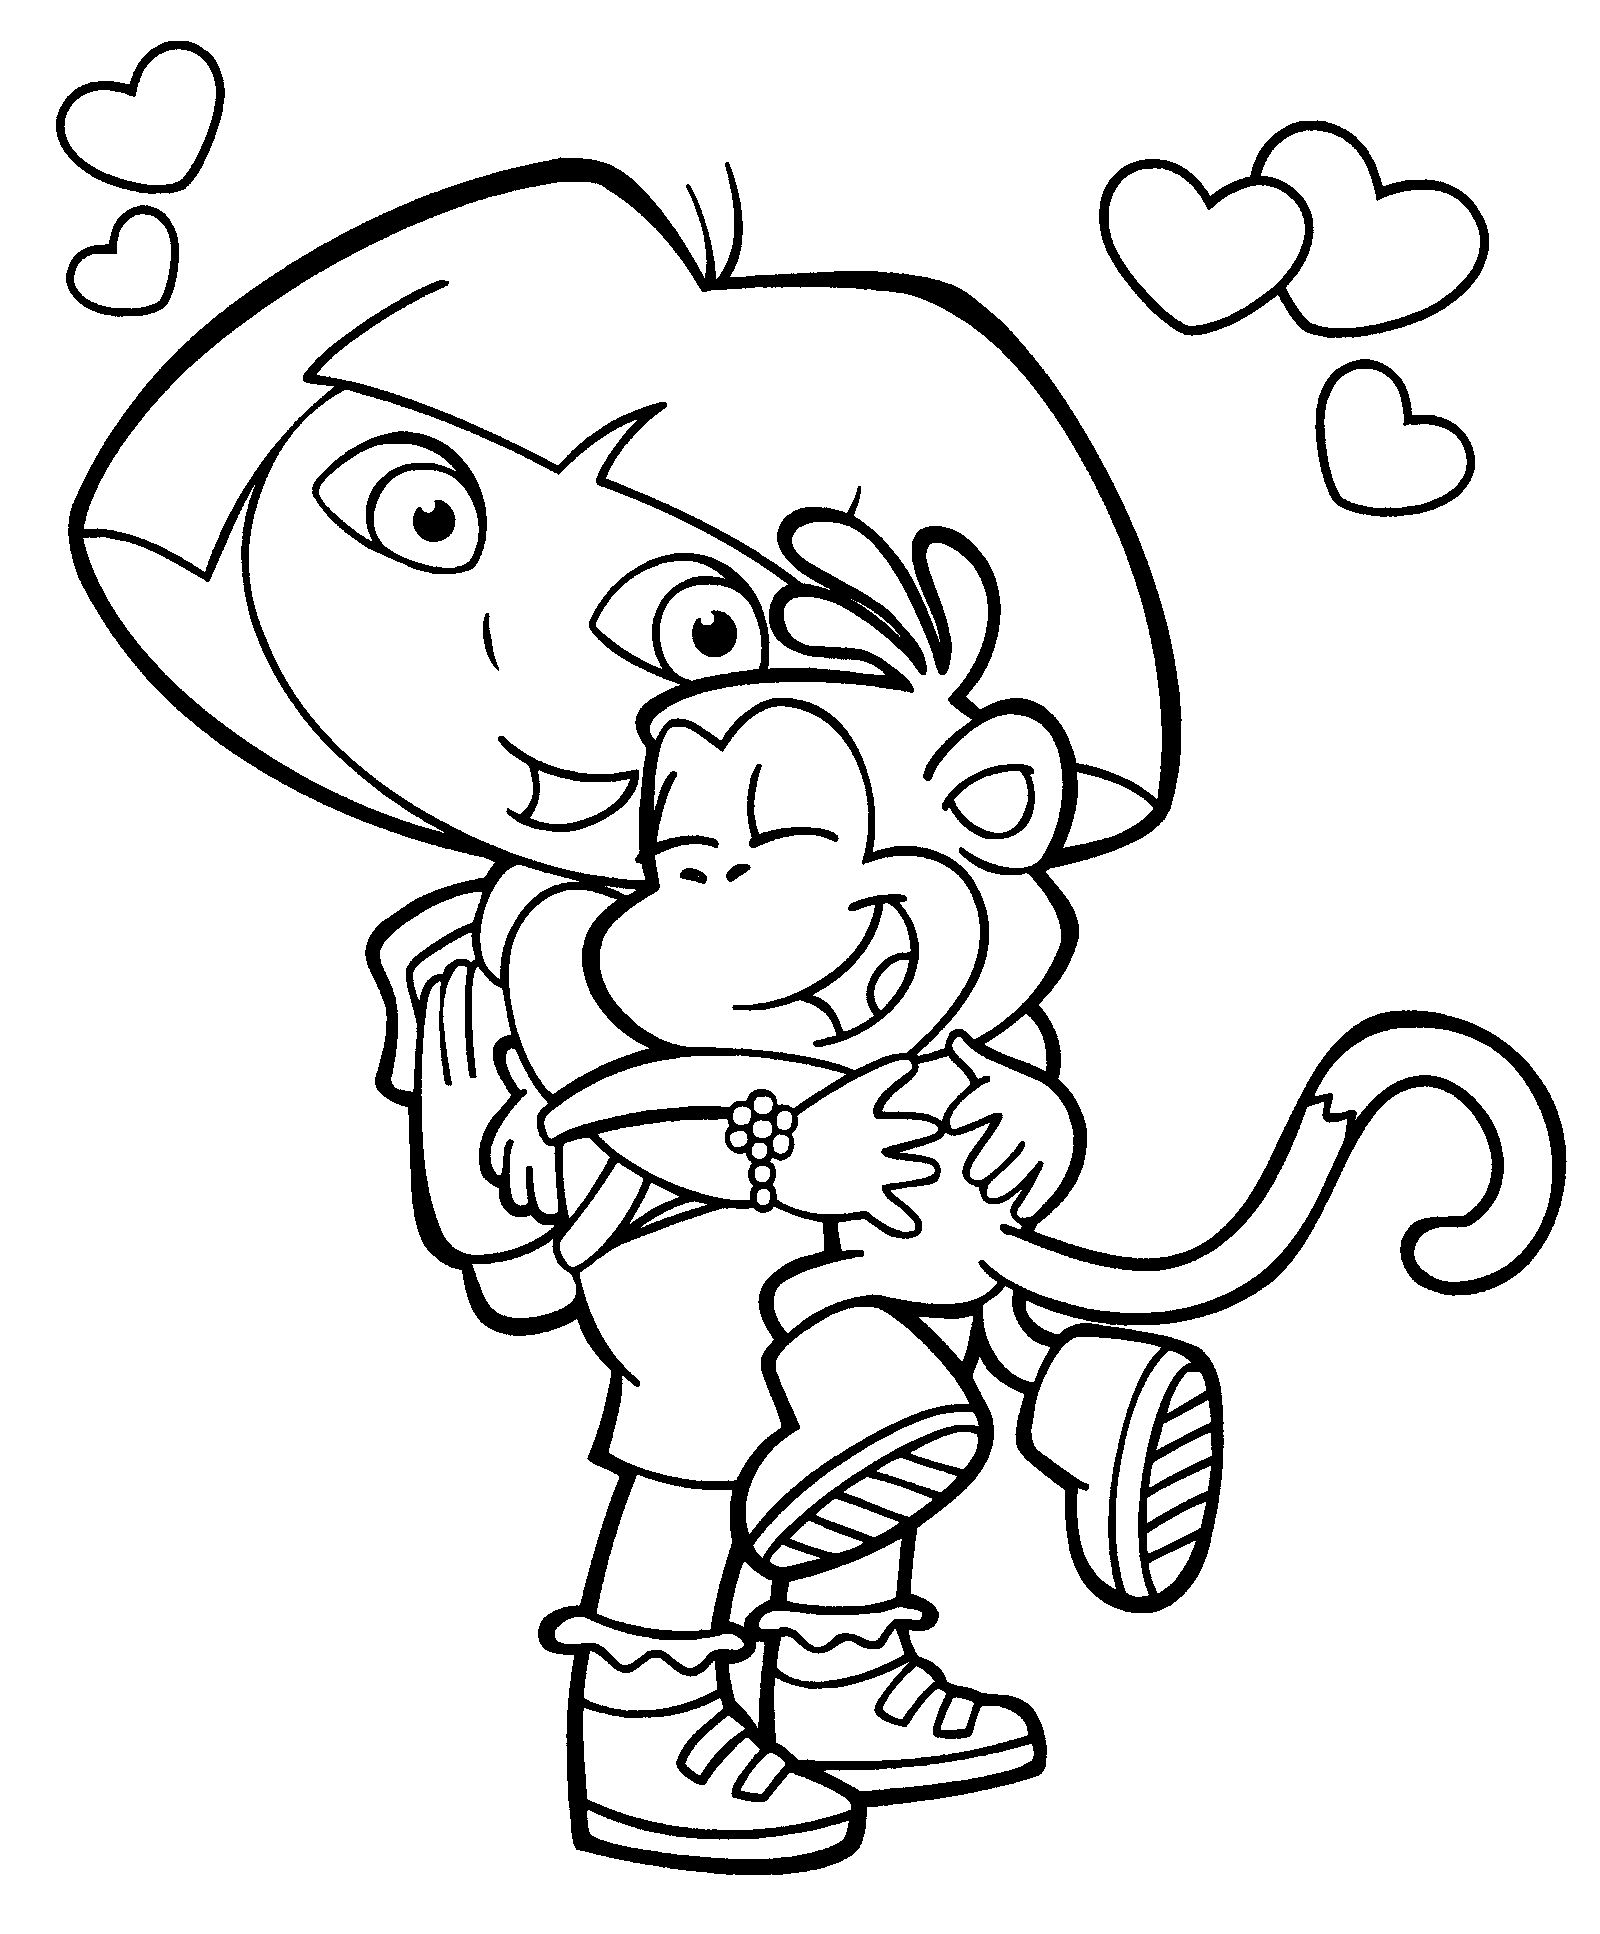 Free dora pictures to print and color dora coloring for Dora black and white coloring pages